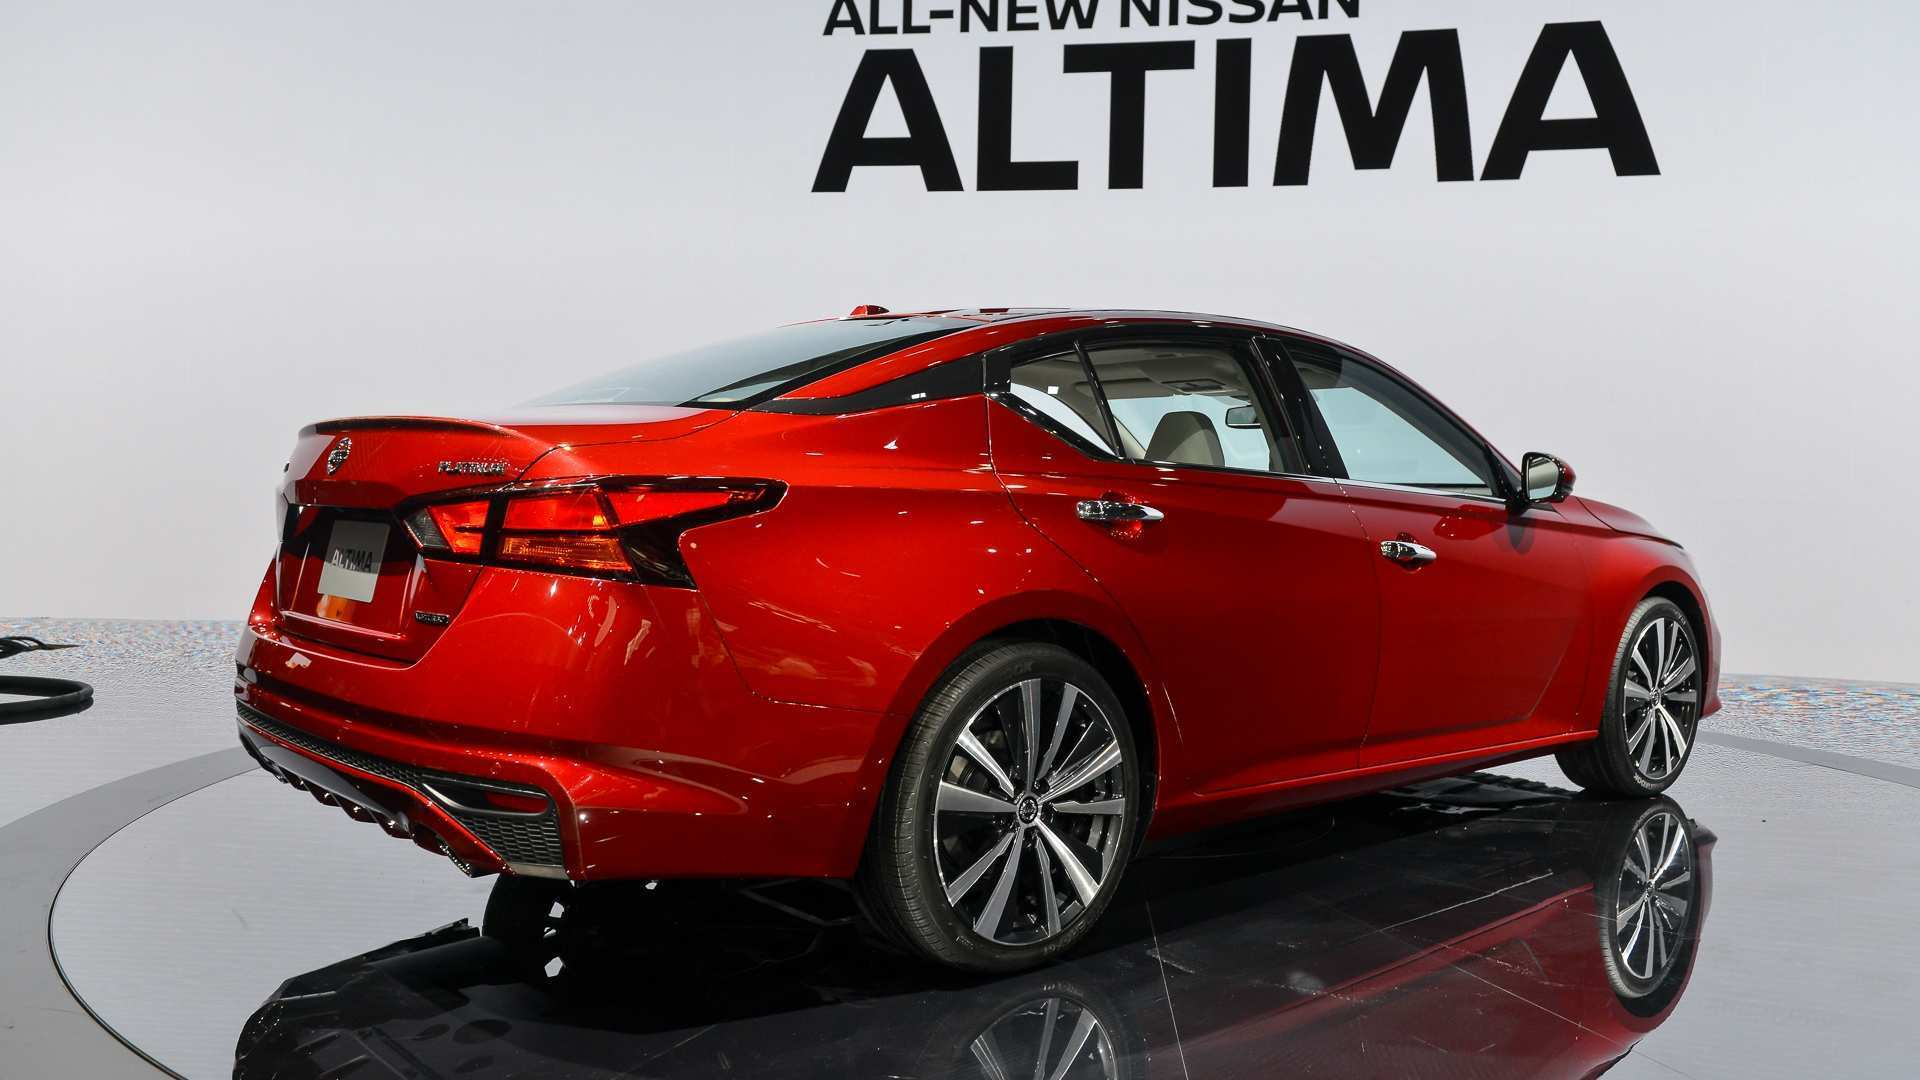 90 New 2020 Nissan Altima History